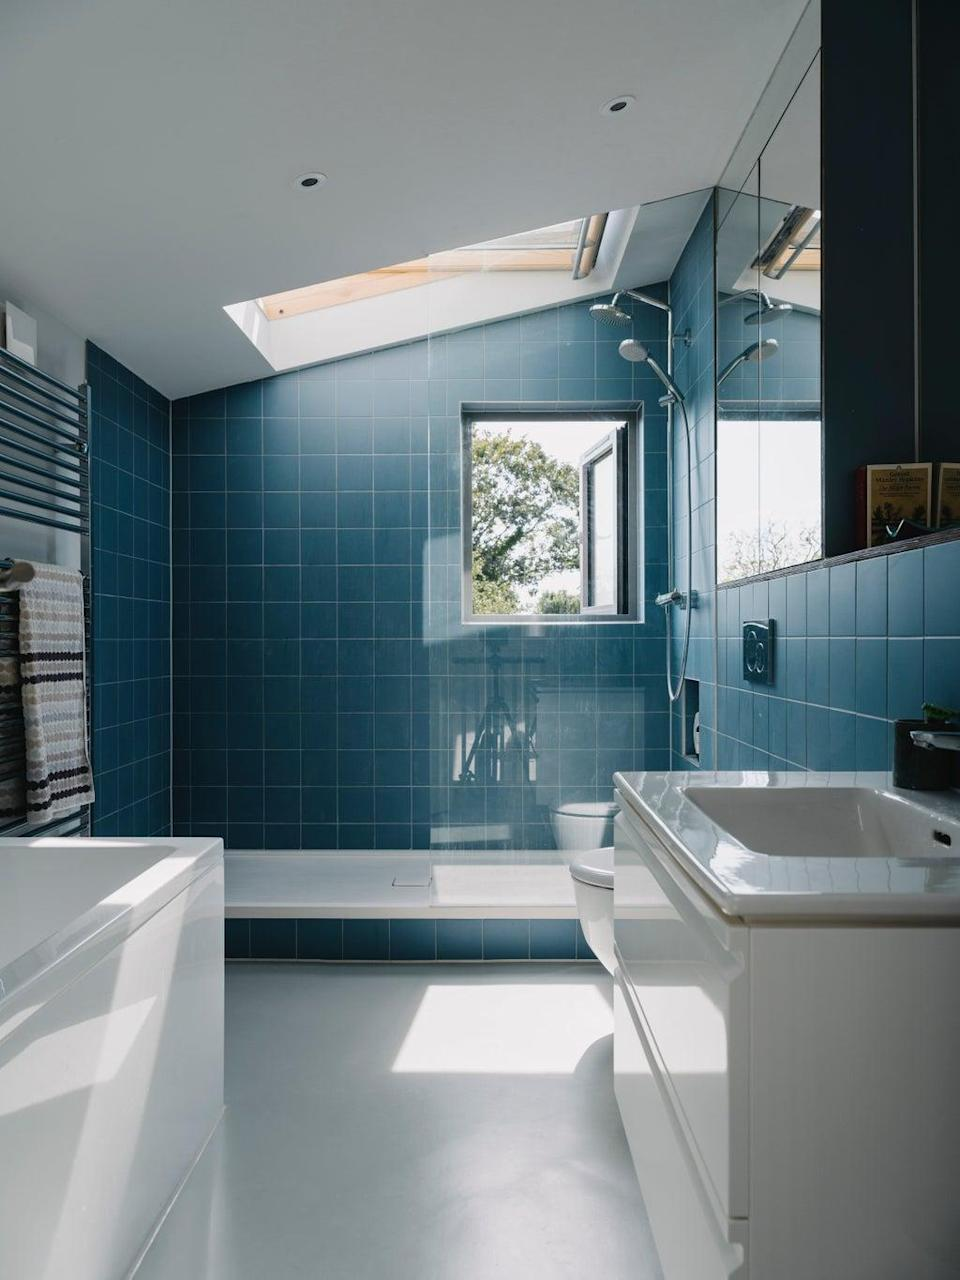 A new upstairs bathroom with skylight  was added above the back bedroom in a subtle structural reorganisation that did not require the hassle of a full planning application (Tim Crocker)